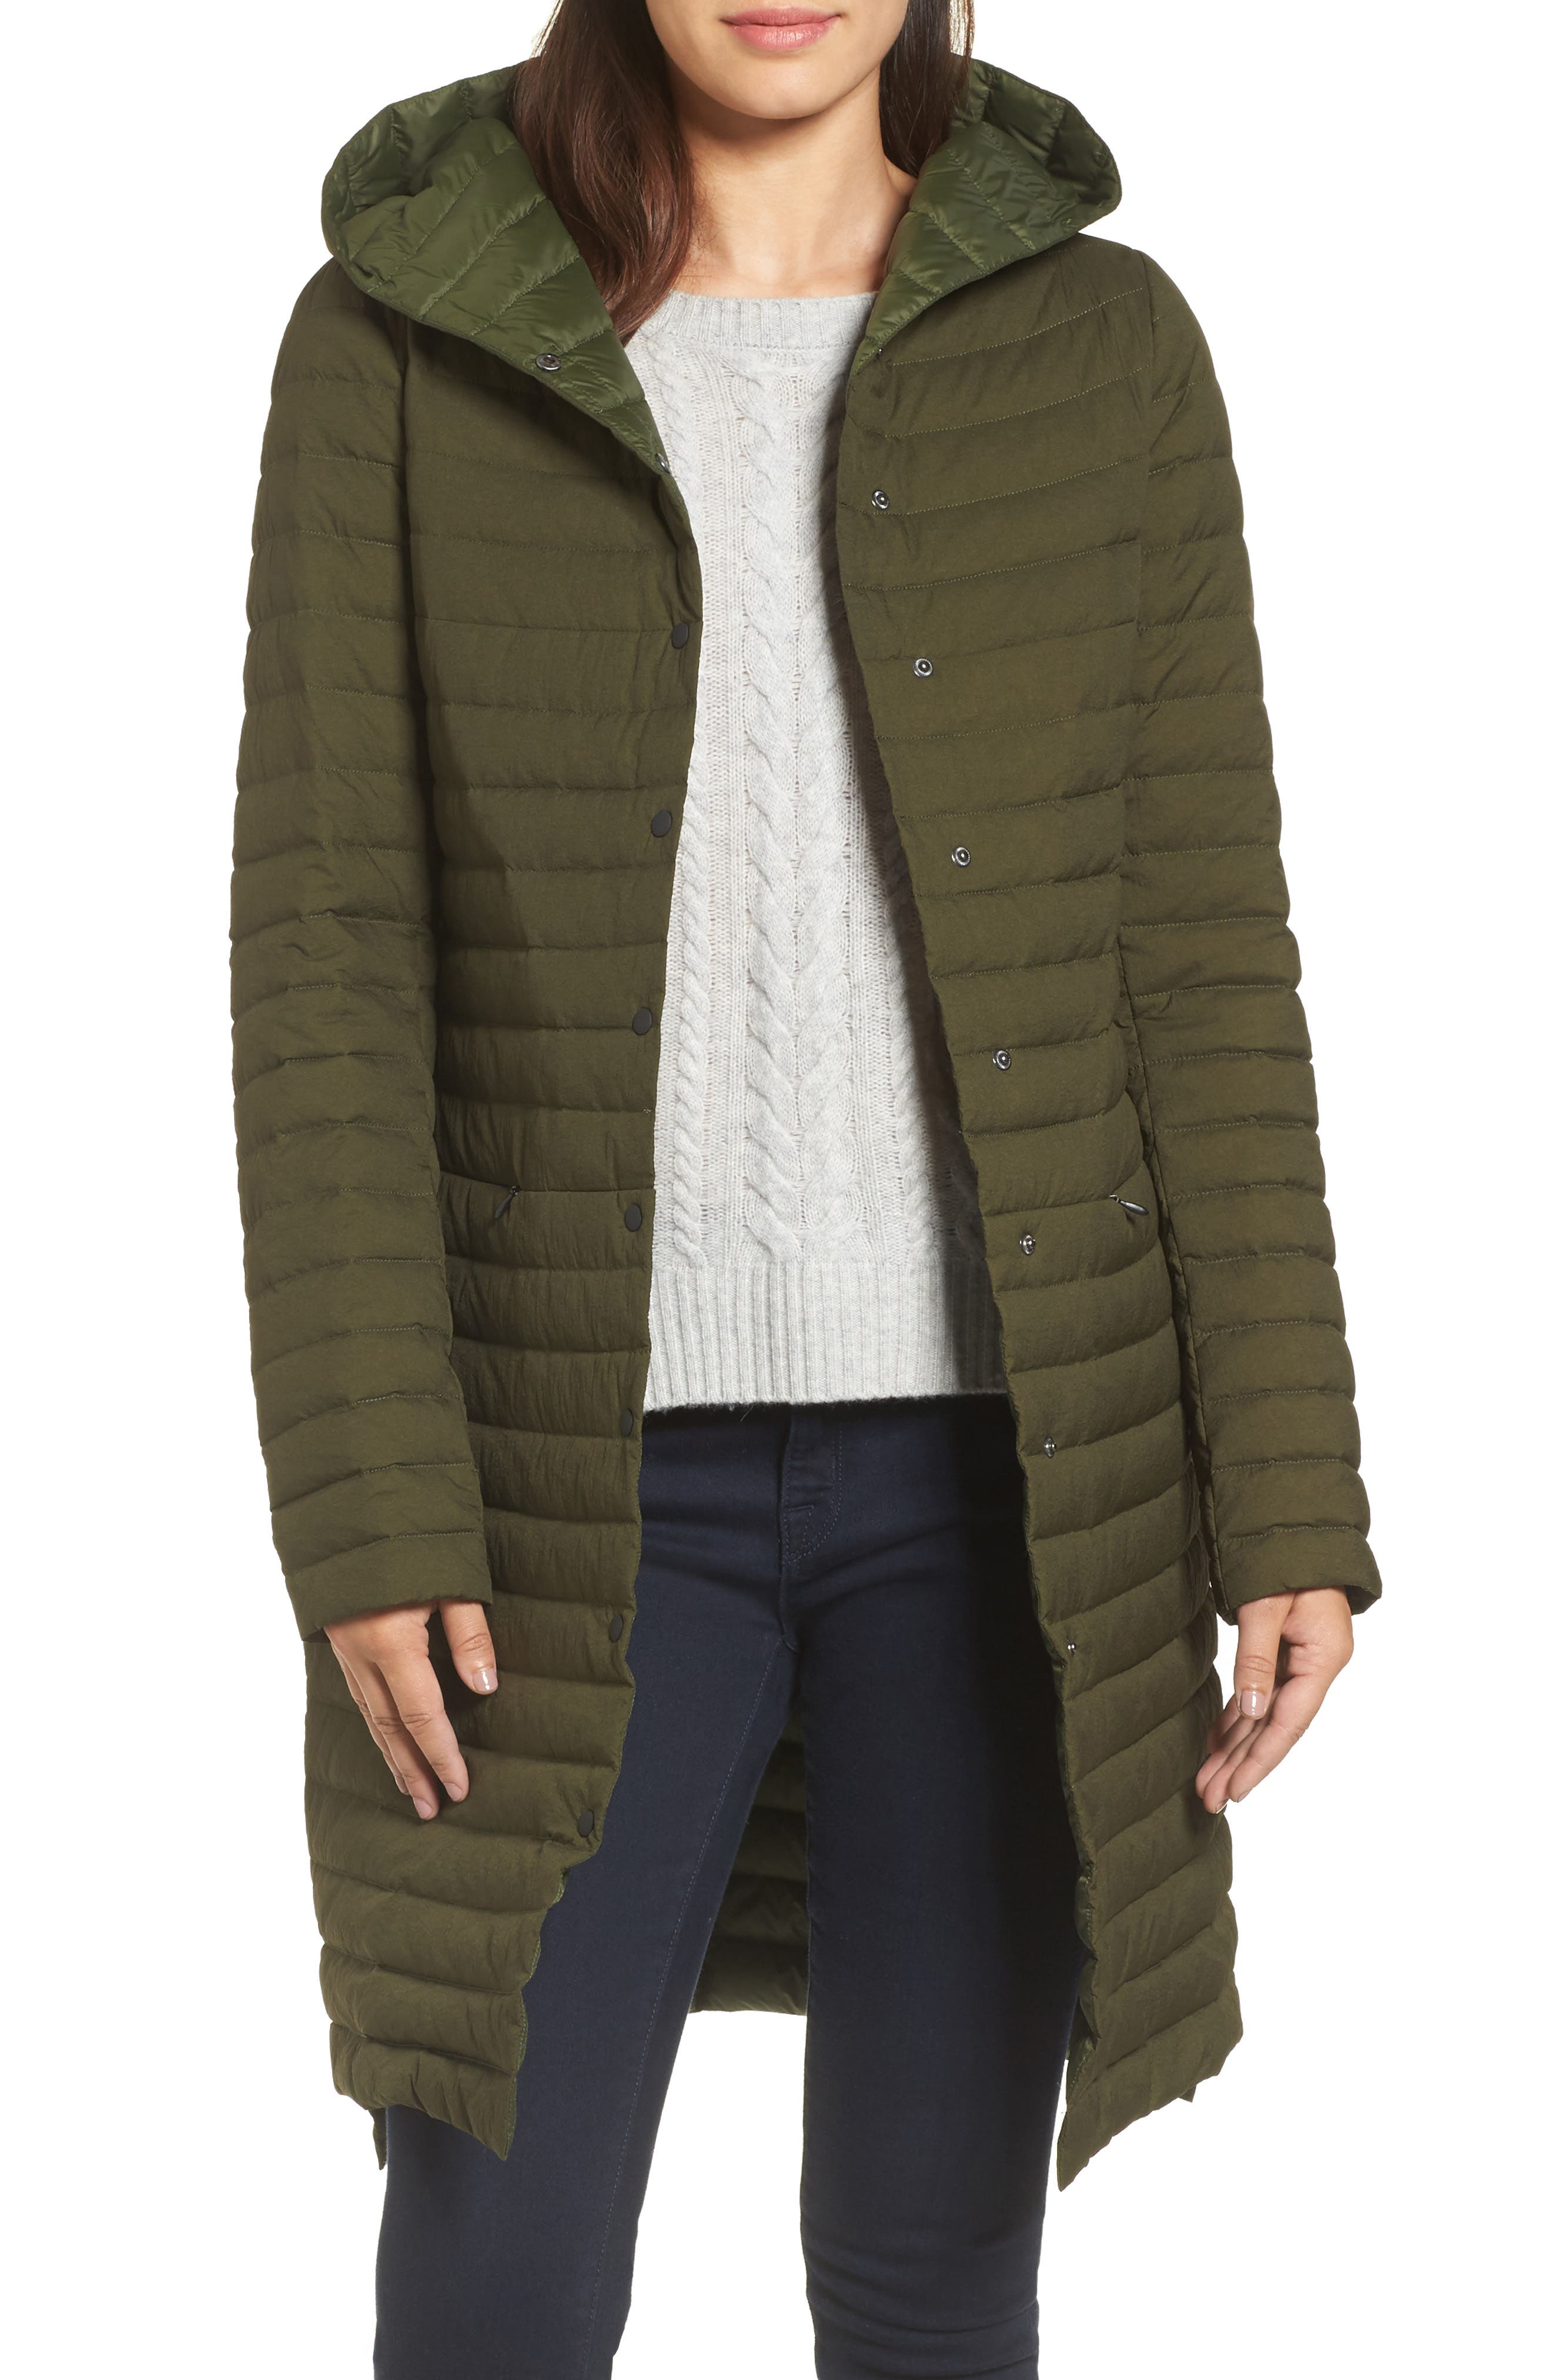 Edith Hooded Long Coat,                         Main,                         color, Olive